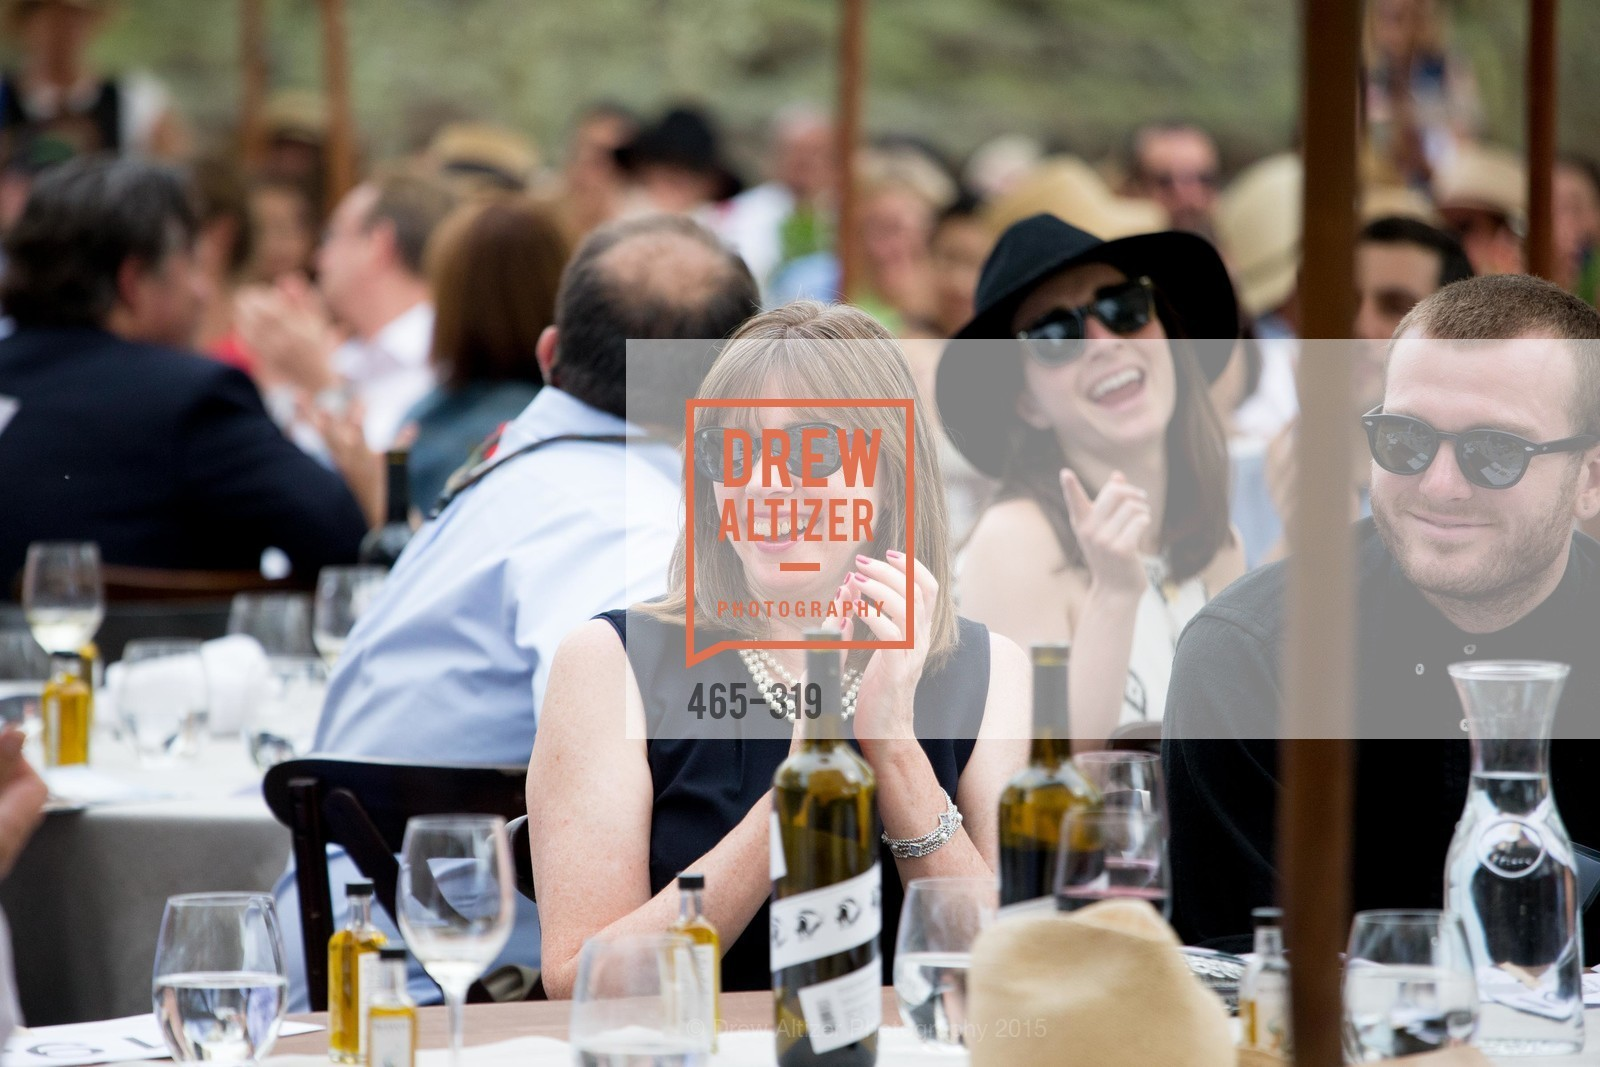 Leslie Berriman, Nion McEvoy Jr., Fall for Art: ODC at McEvoy Ranch, McEvoy Ranch. 5935 Red Hill Road, September 27th, 2015,Drew Altizer, Drew Altizer Photography, full-service agency, private events, San Francisco photographer, photographer california